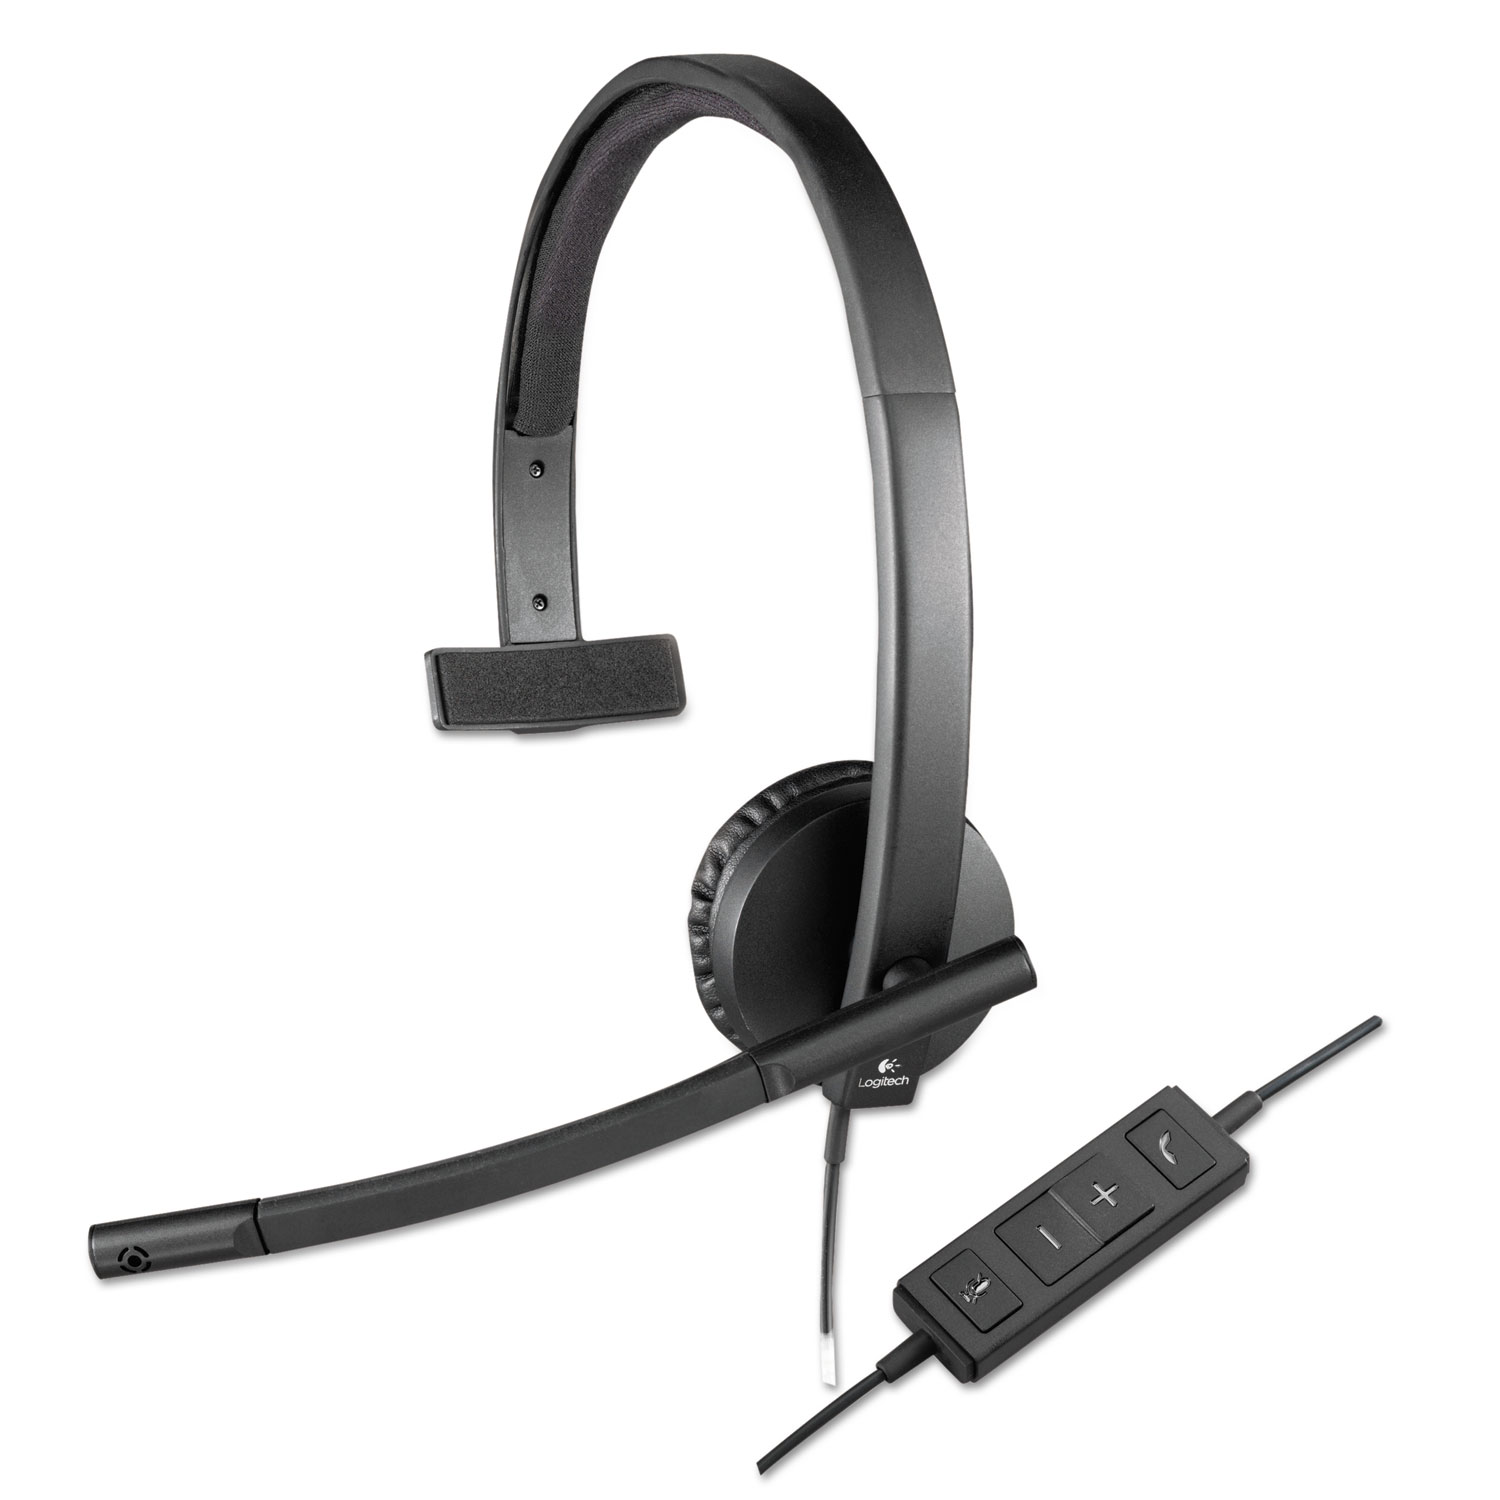 View USB H570e Over-the-Head Wired Headset and other Headsets ...